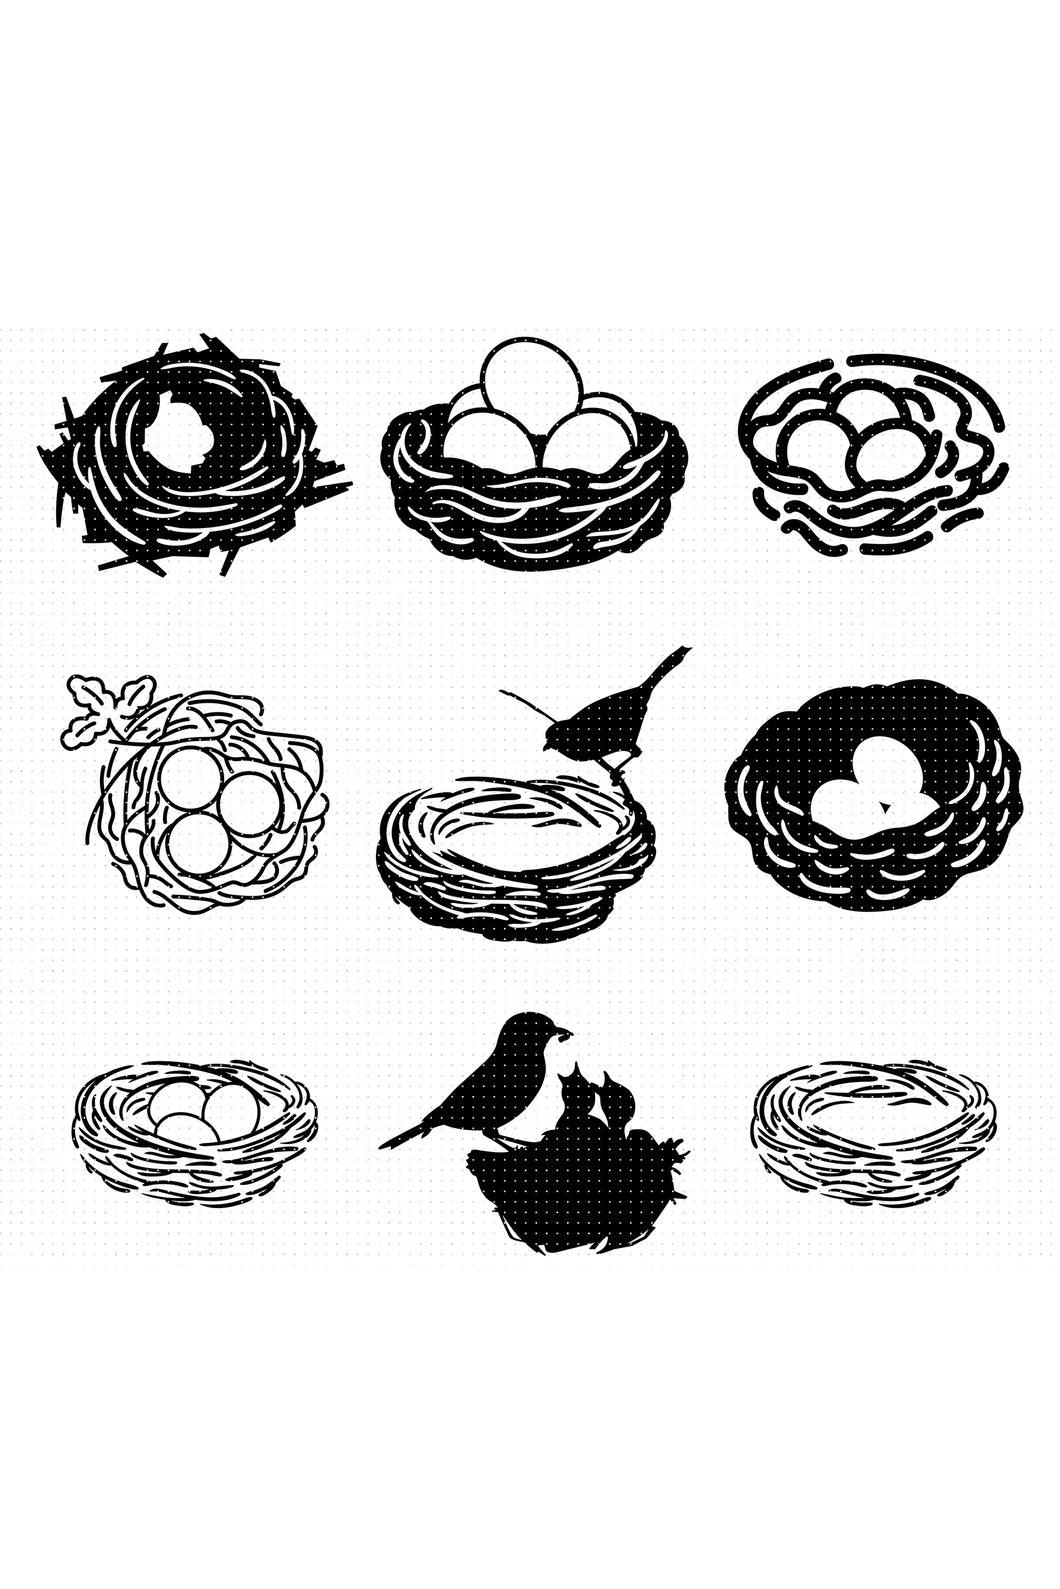 bird's nest SVG, PNG, DXF, clipart, EPS, vector cut file instant download